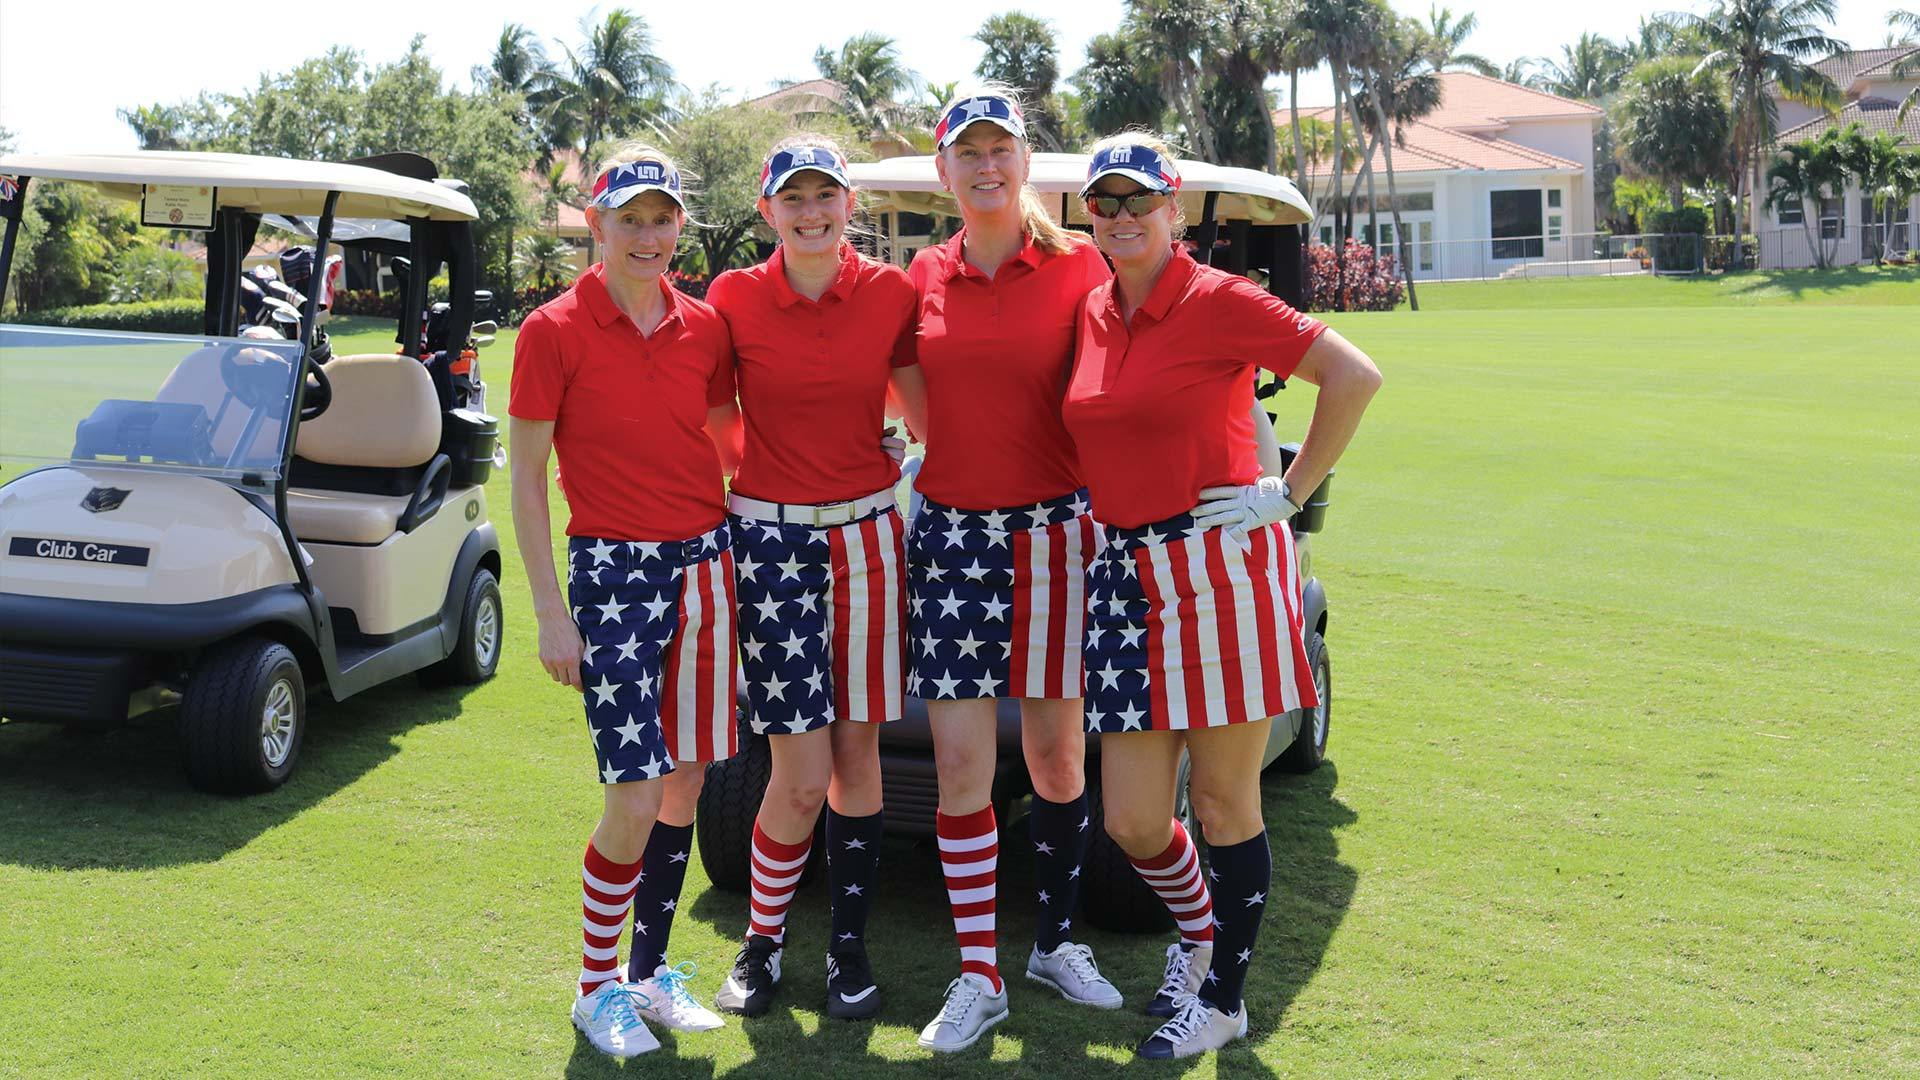 mizner-country-club-delray-beach-golf-images-14